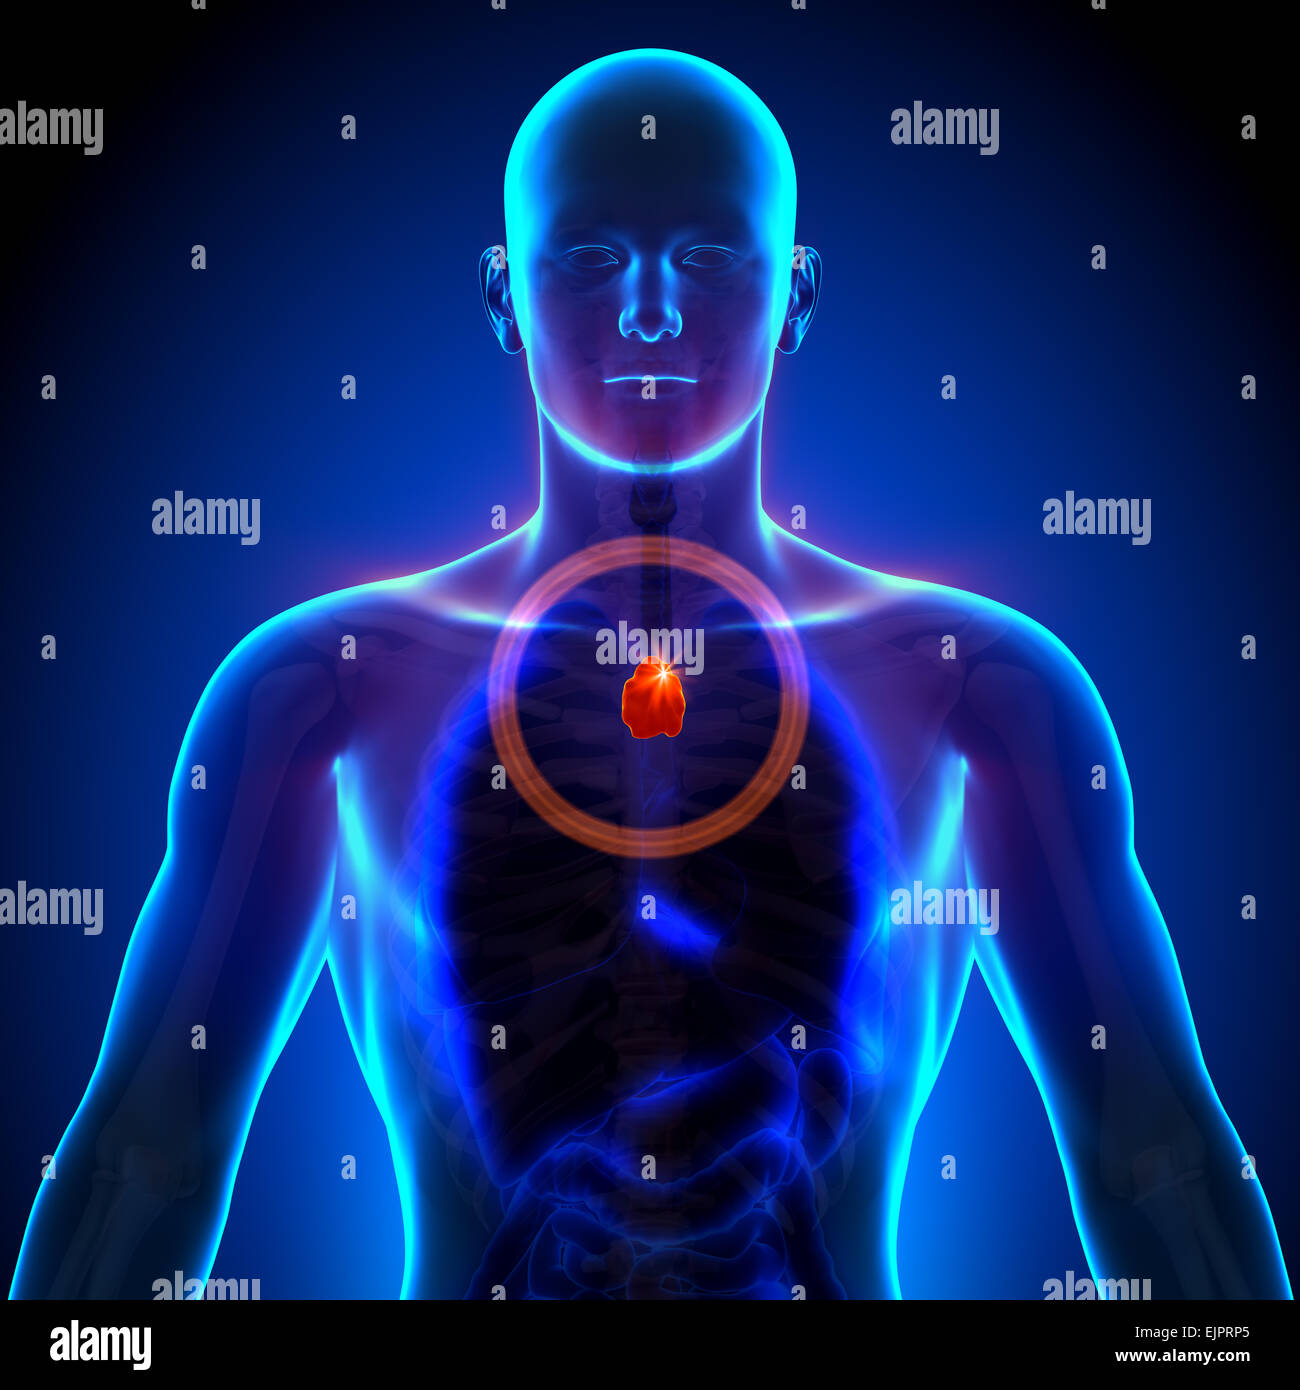 Thymus - Male anatomy of human organs - x-ray view Stock Photo ...